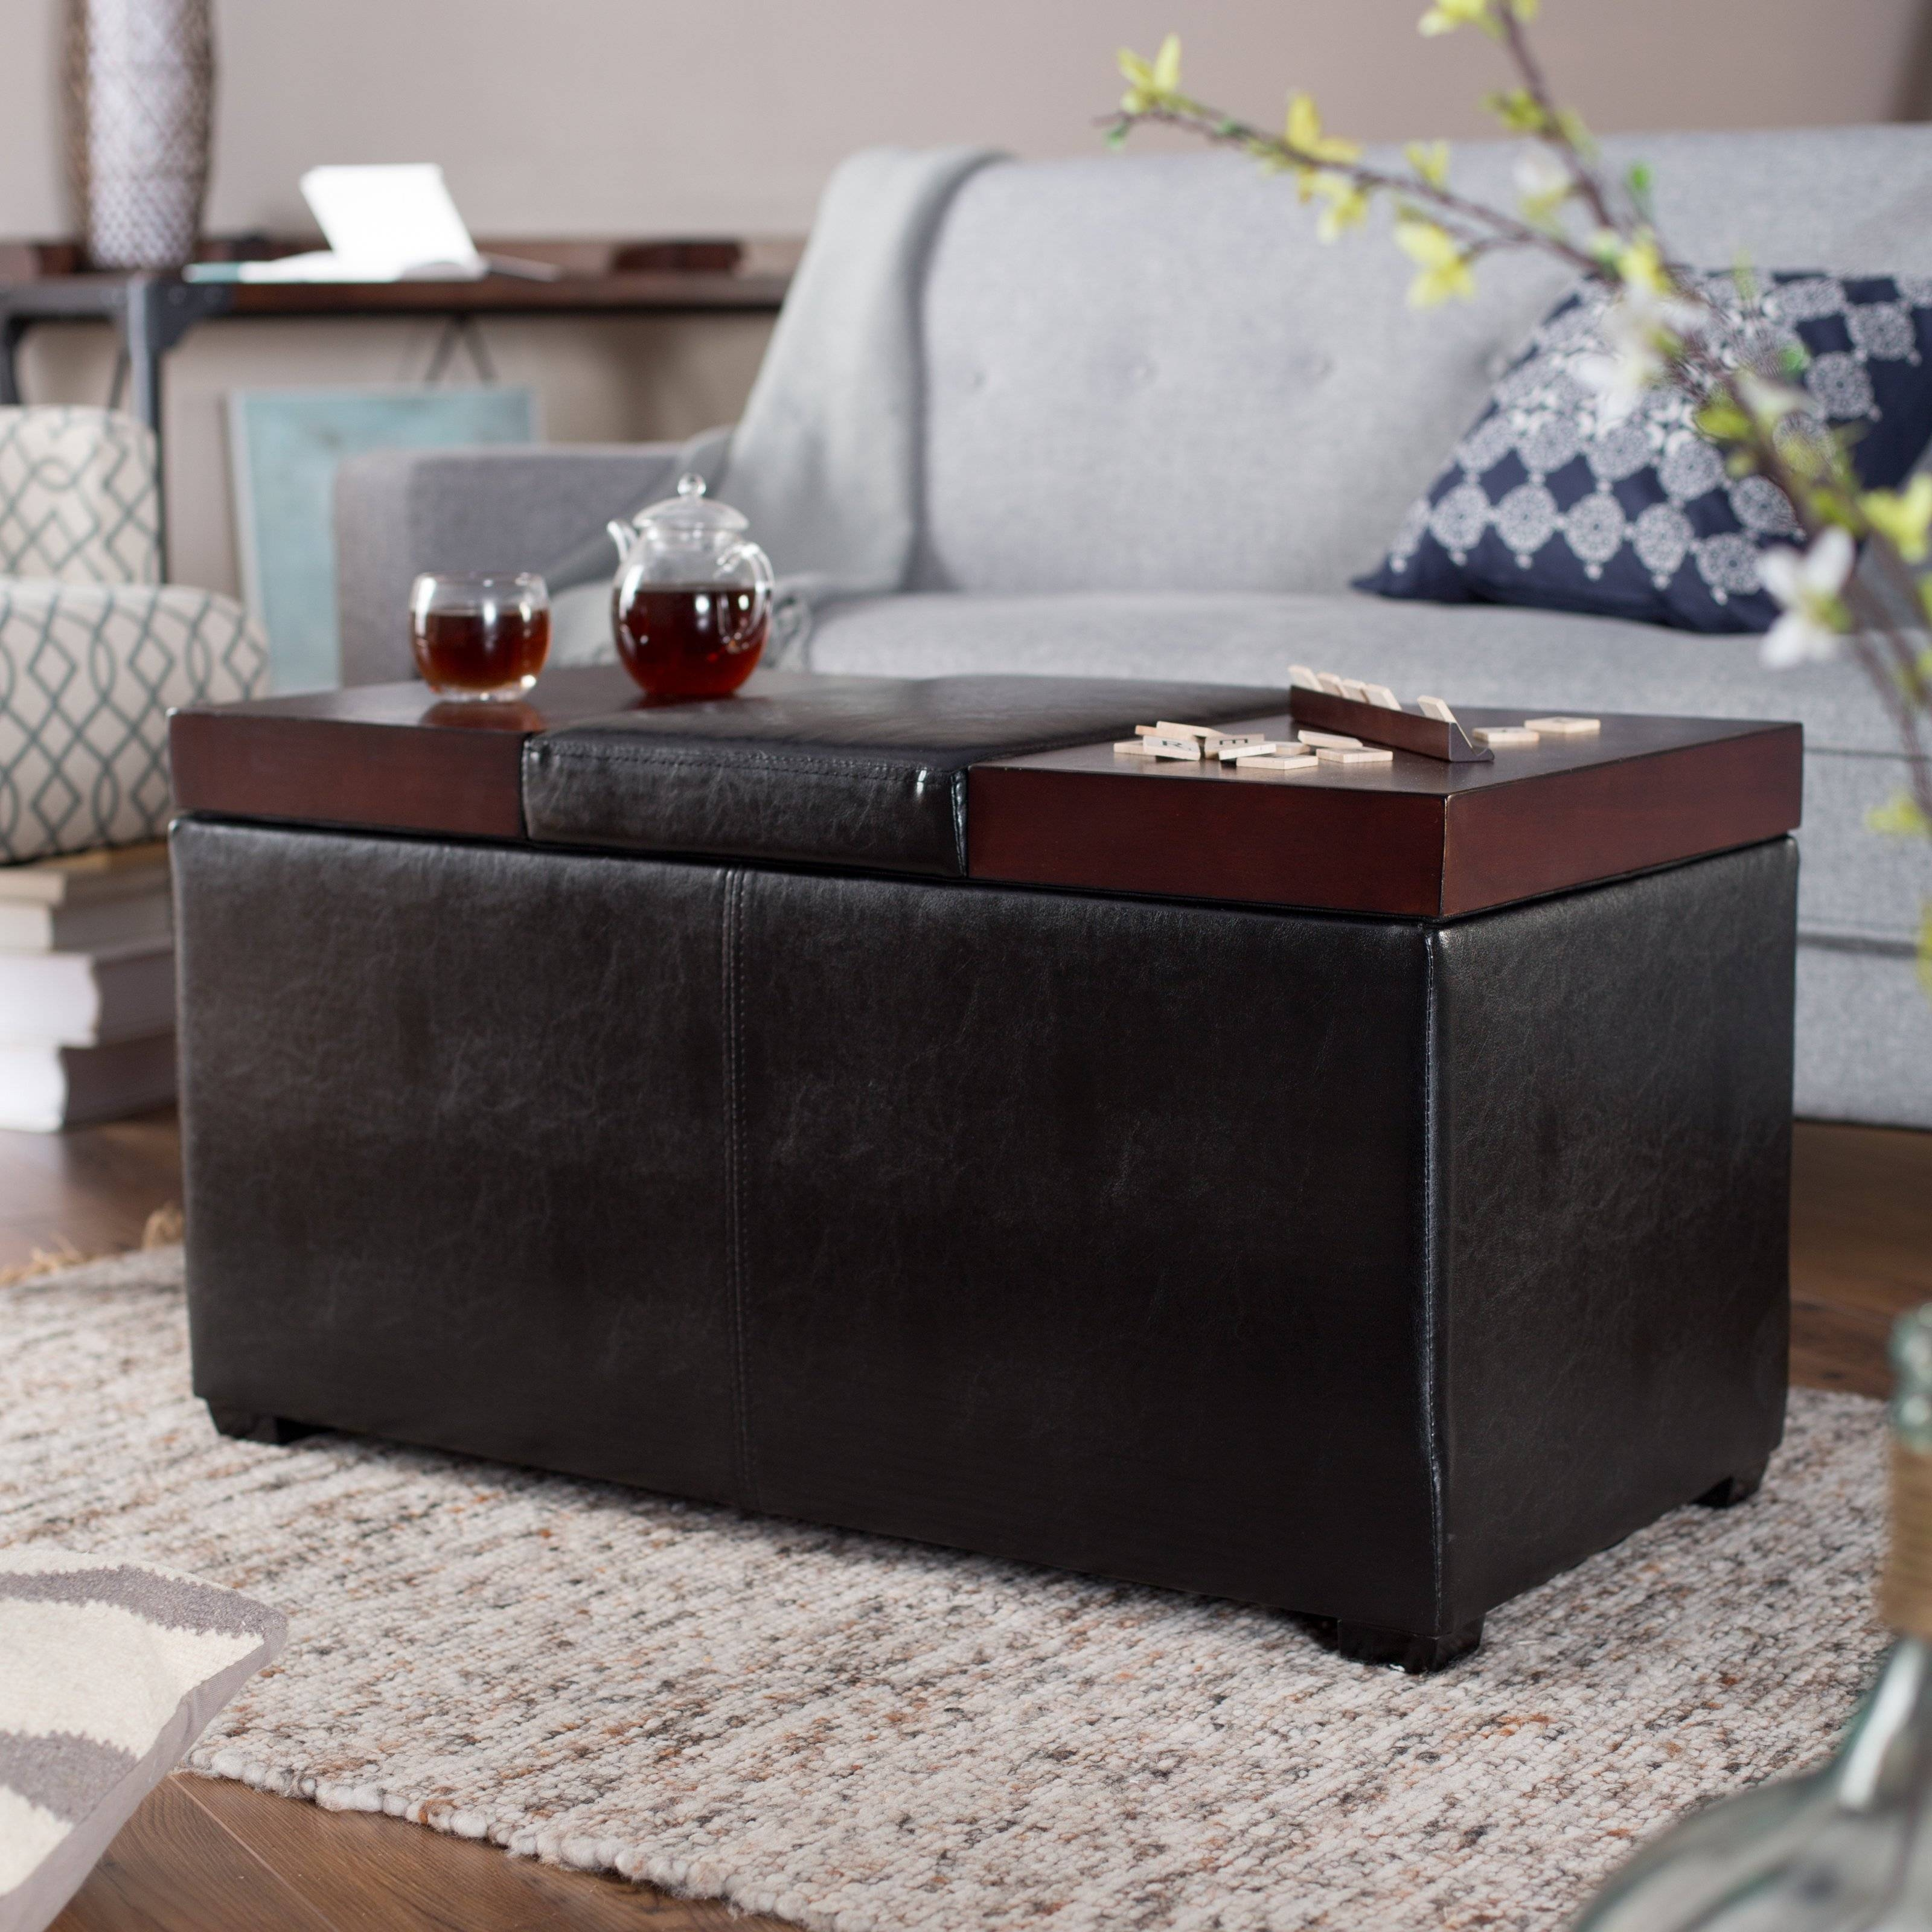 Living Room: 36 Top Brown Leather Ottoman Coffee Tables With Round regarding Brown Leather Ottoman Coffee Tables (Image 27 of 30)